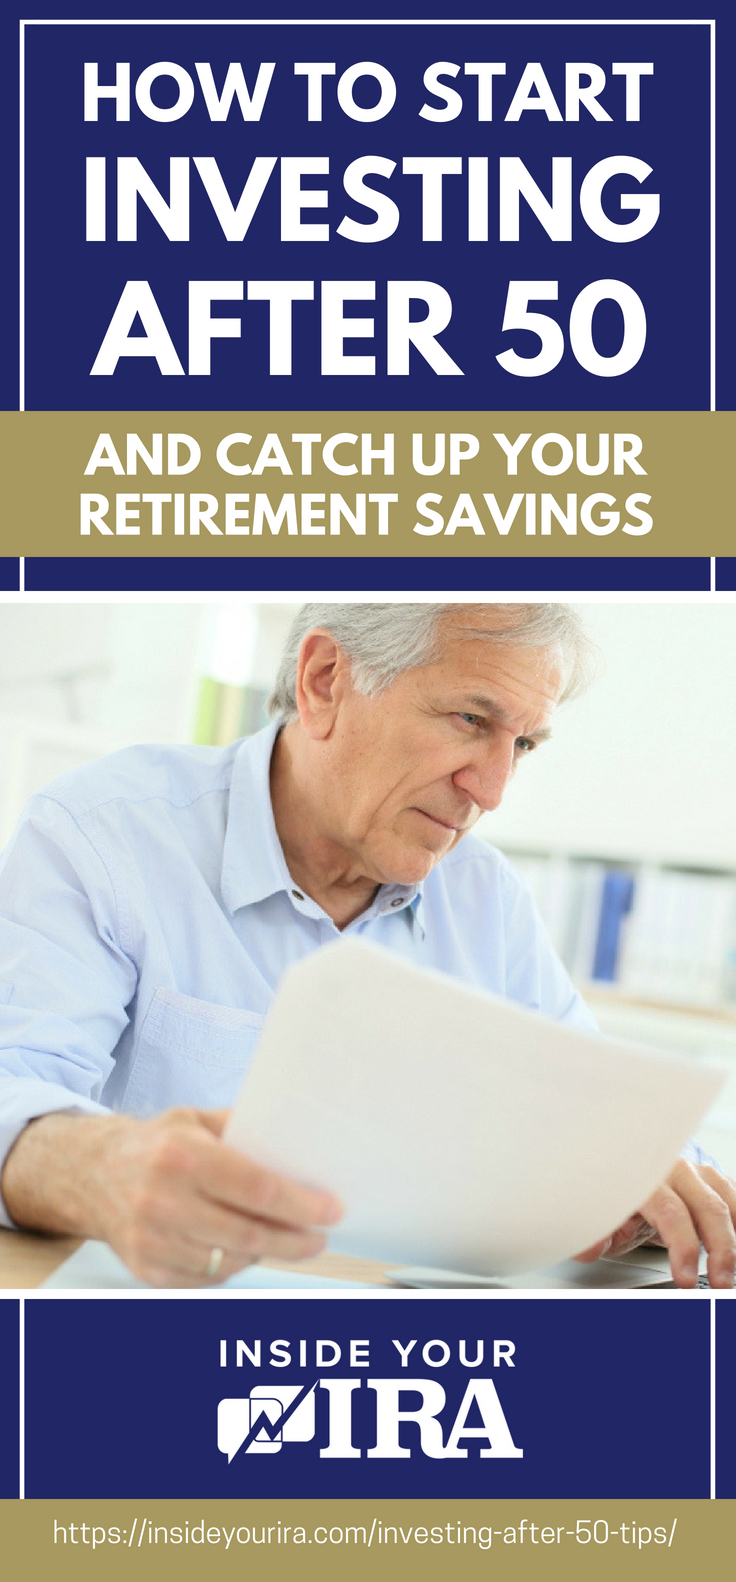 How To Start Investing After 50 And Catch Up Your Retirement Savings https://insideyourira.com/investing-after-50-tips/